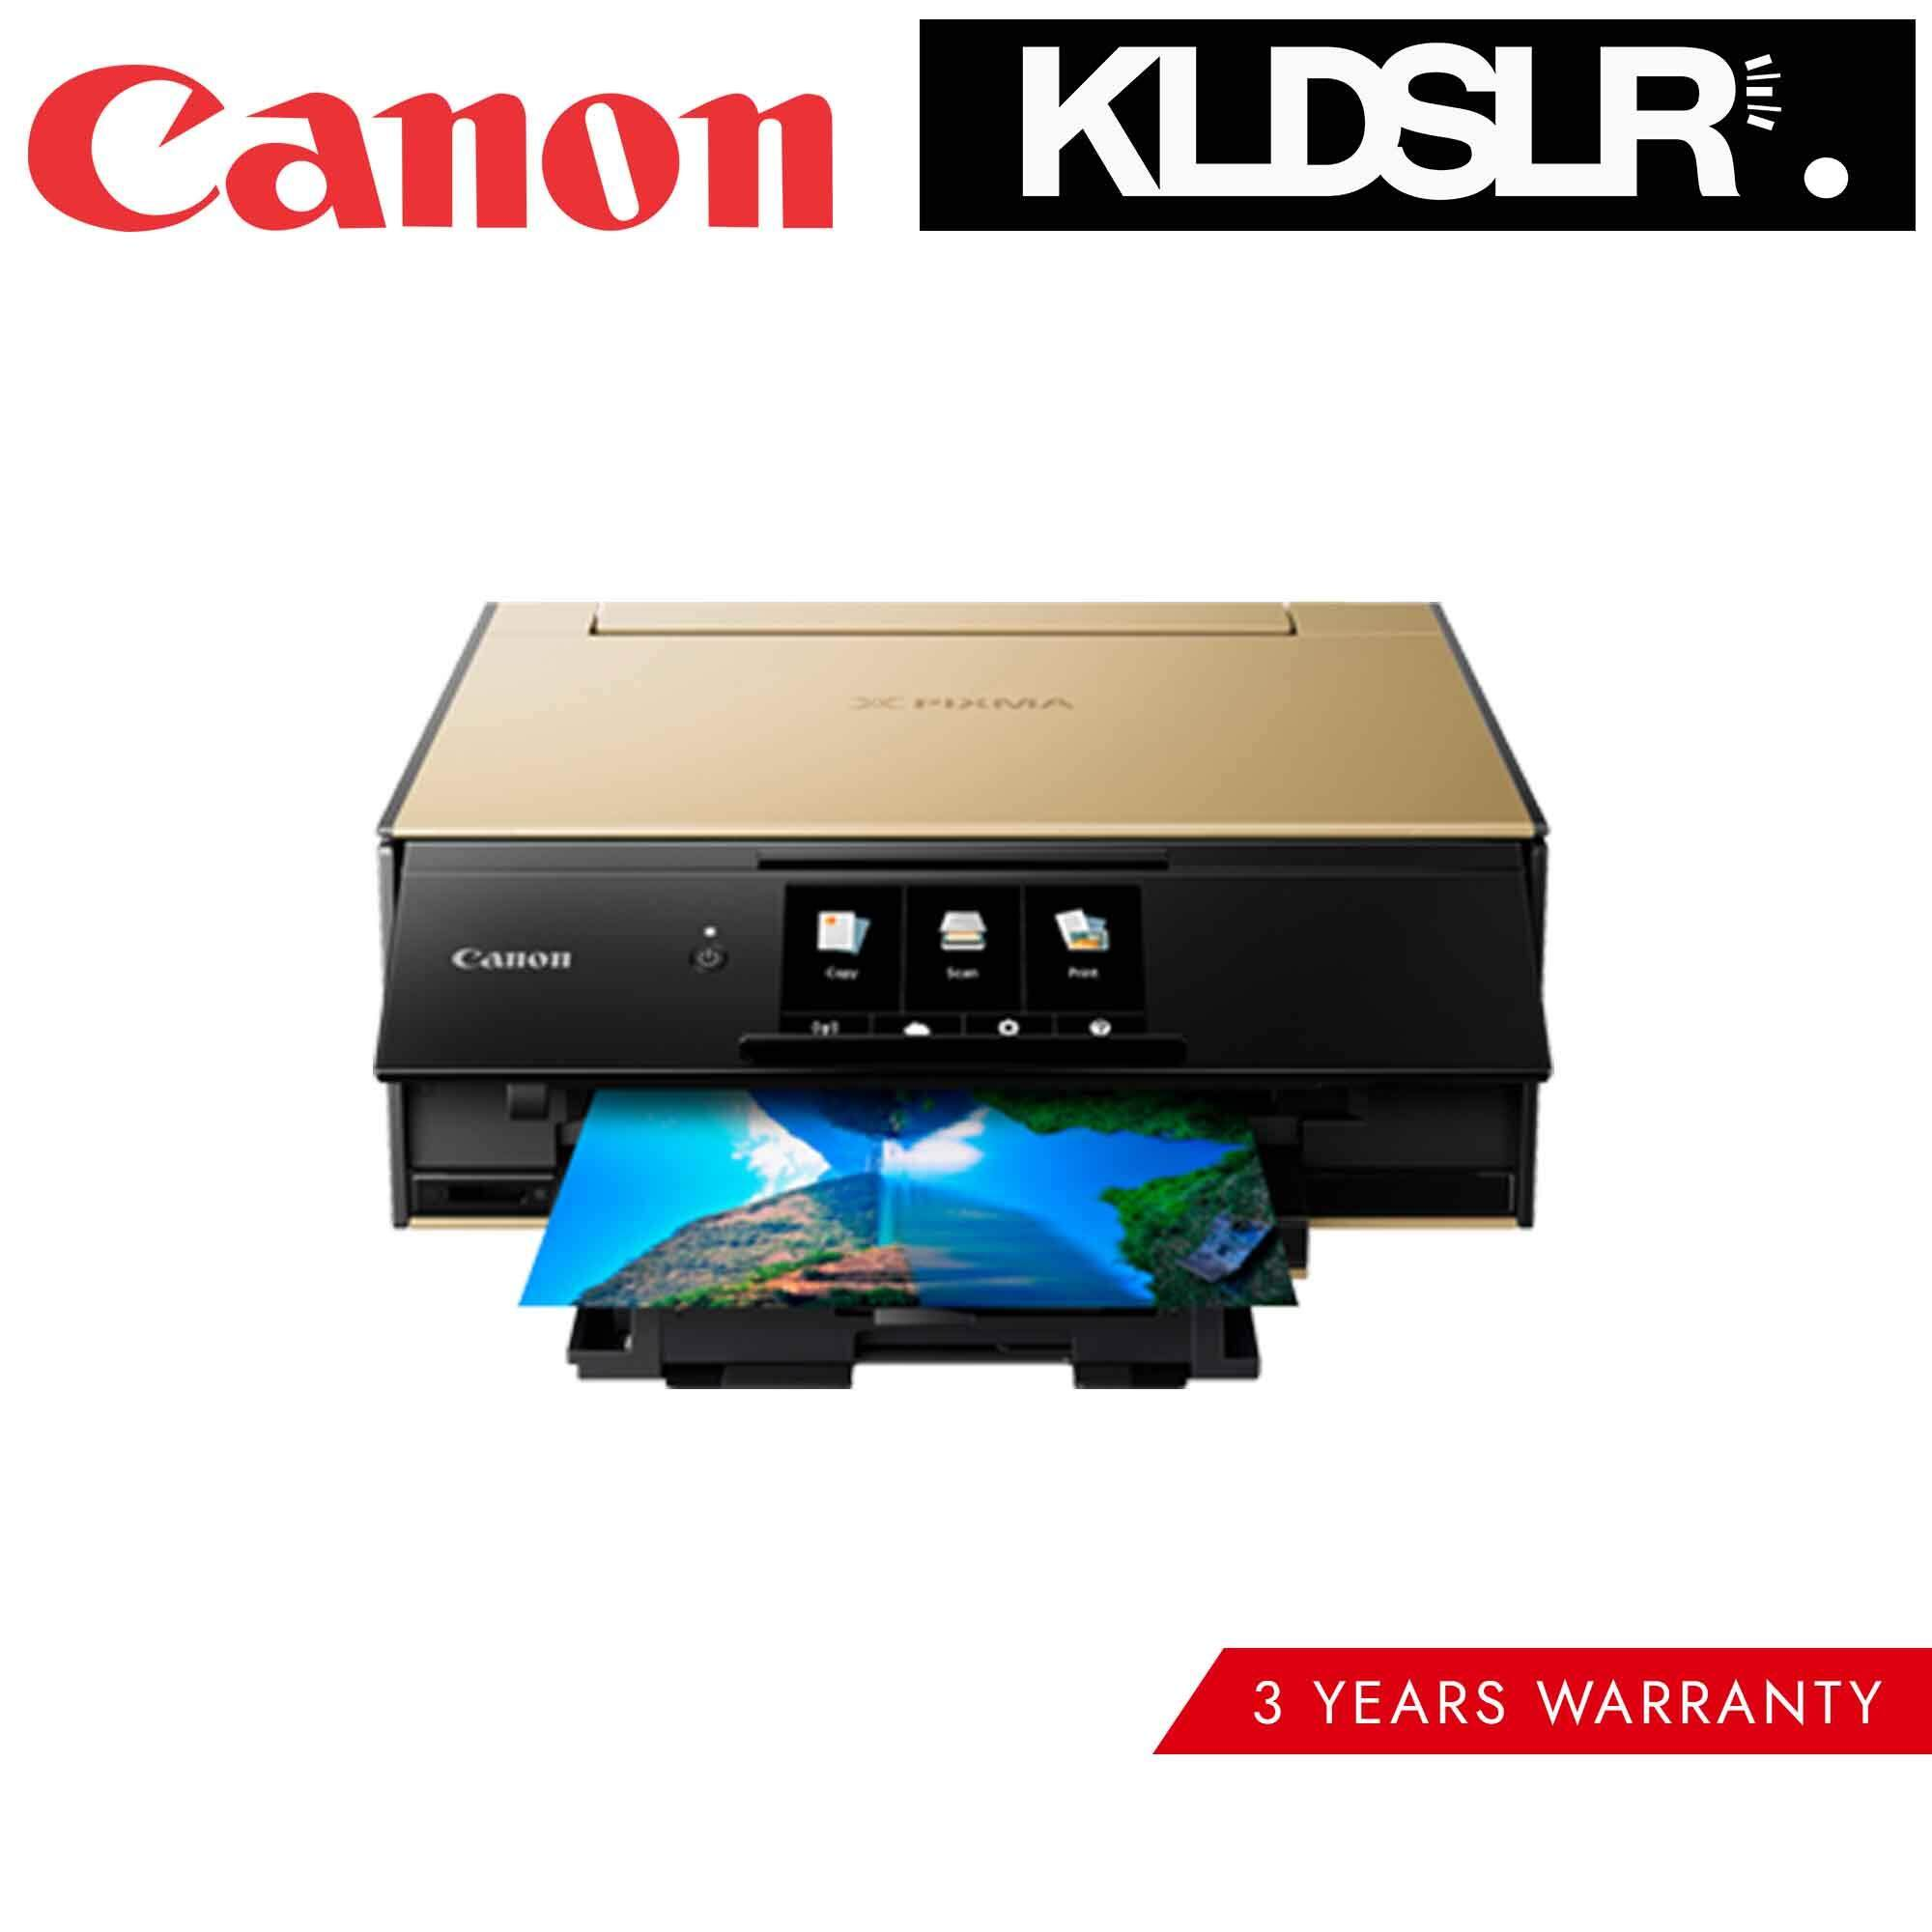 Canon Printers Malaysia Inkjet Printer Pixma G4010 Print Scan Copy Fax Wifi Ts9170 All In One Wireless Gold